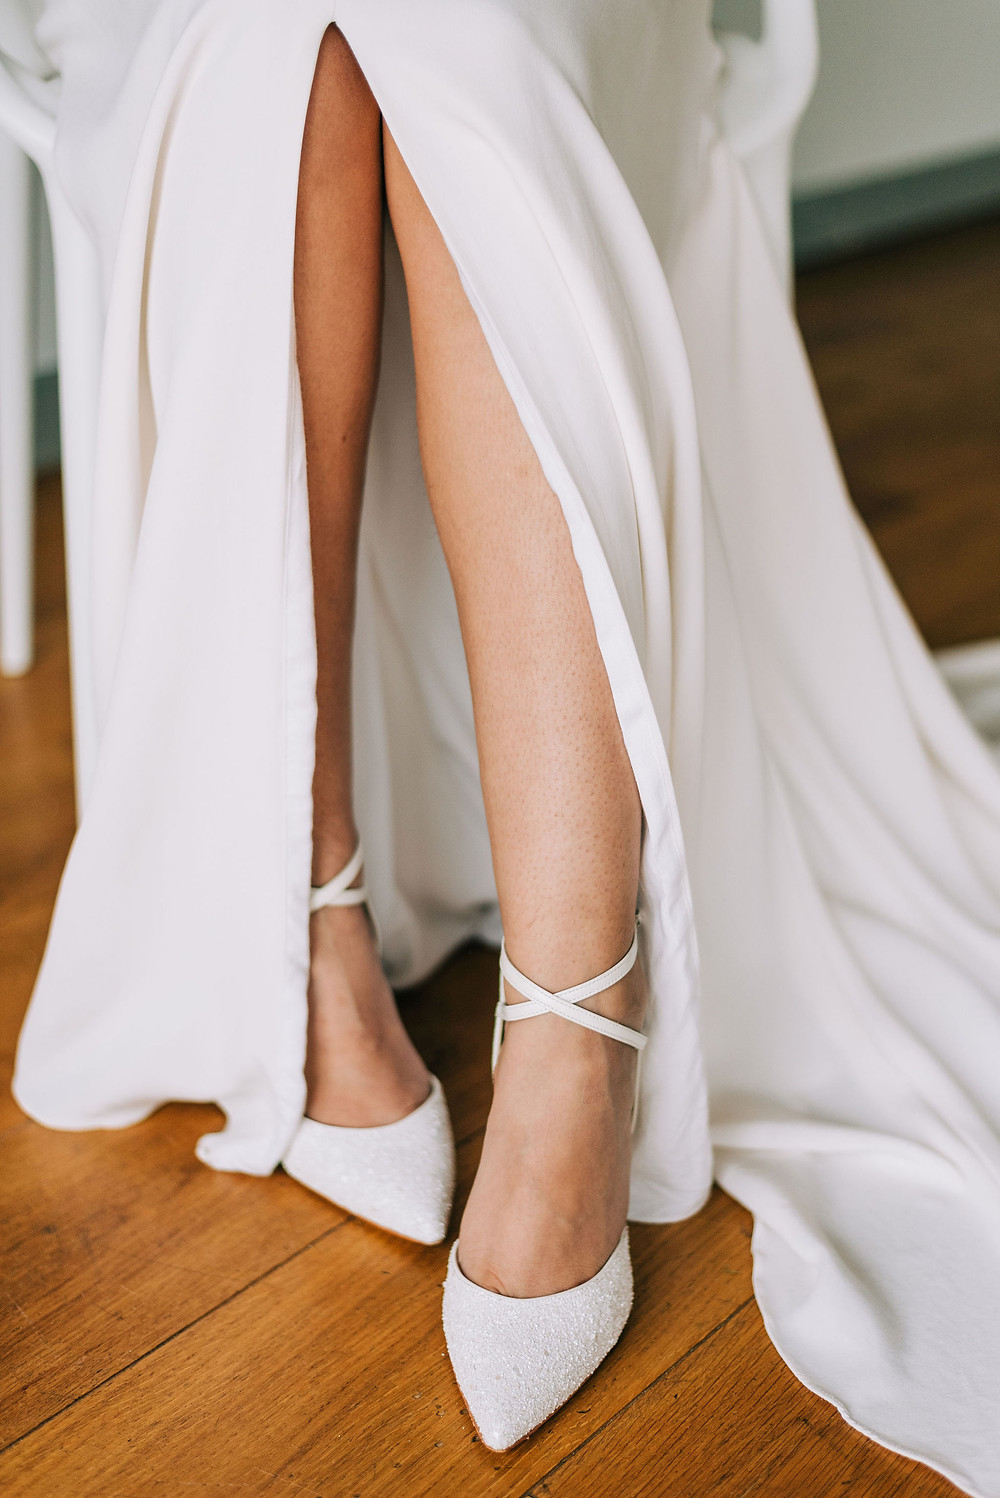 Modern wedding dress by Jessica Turner Designs wearing Charlotte Mills bridal shoes